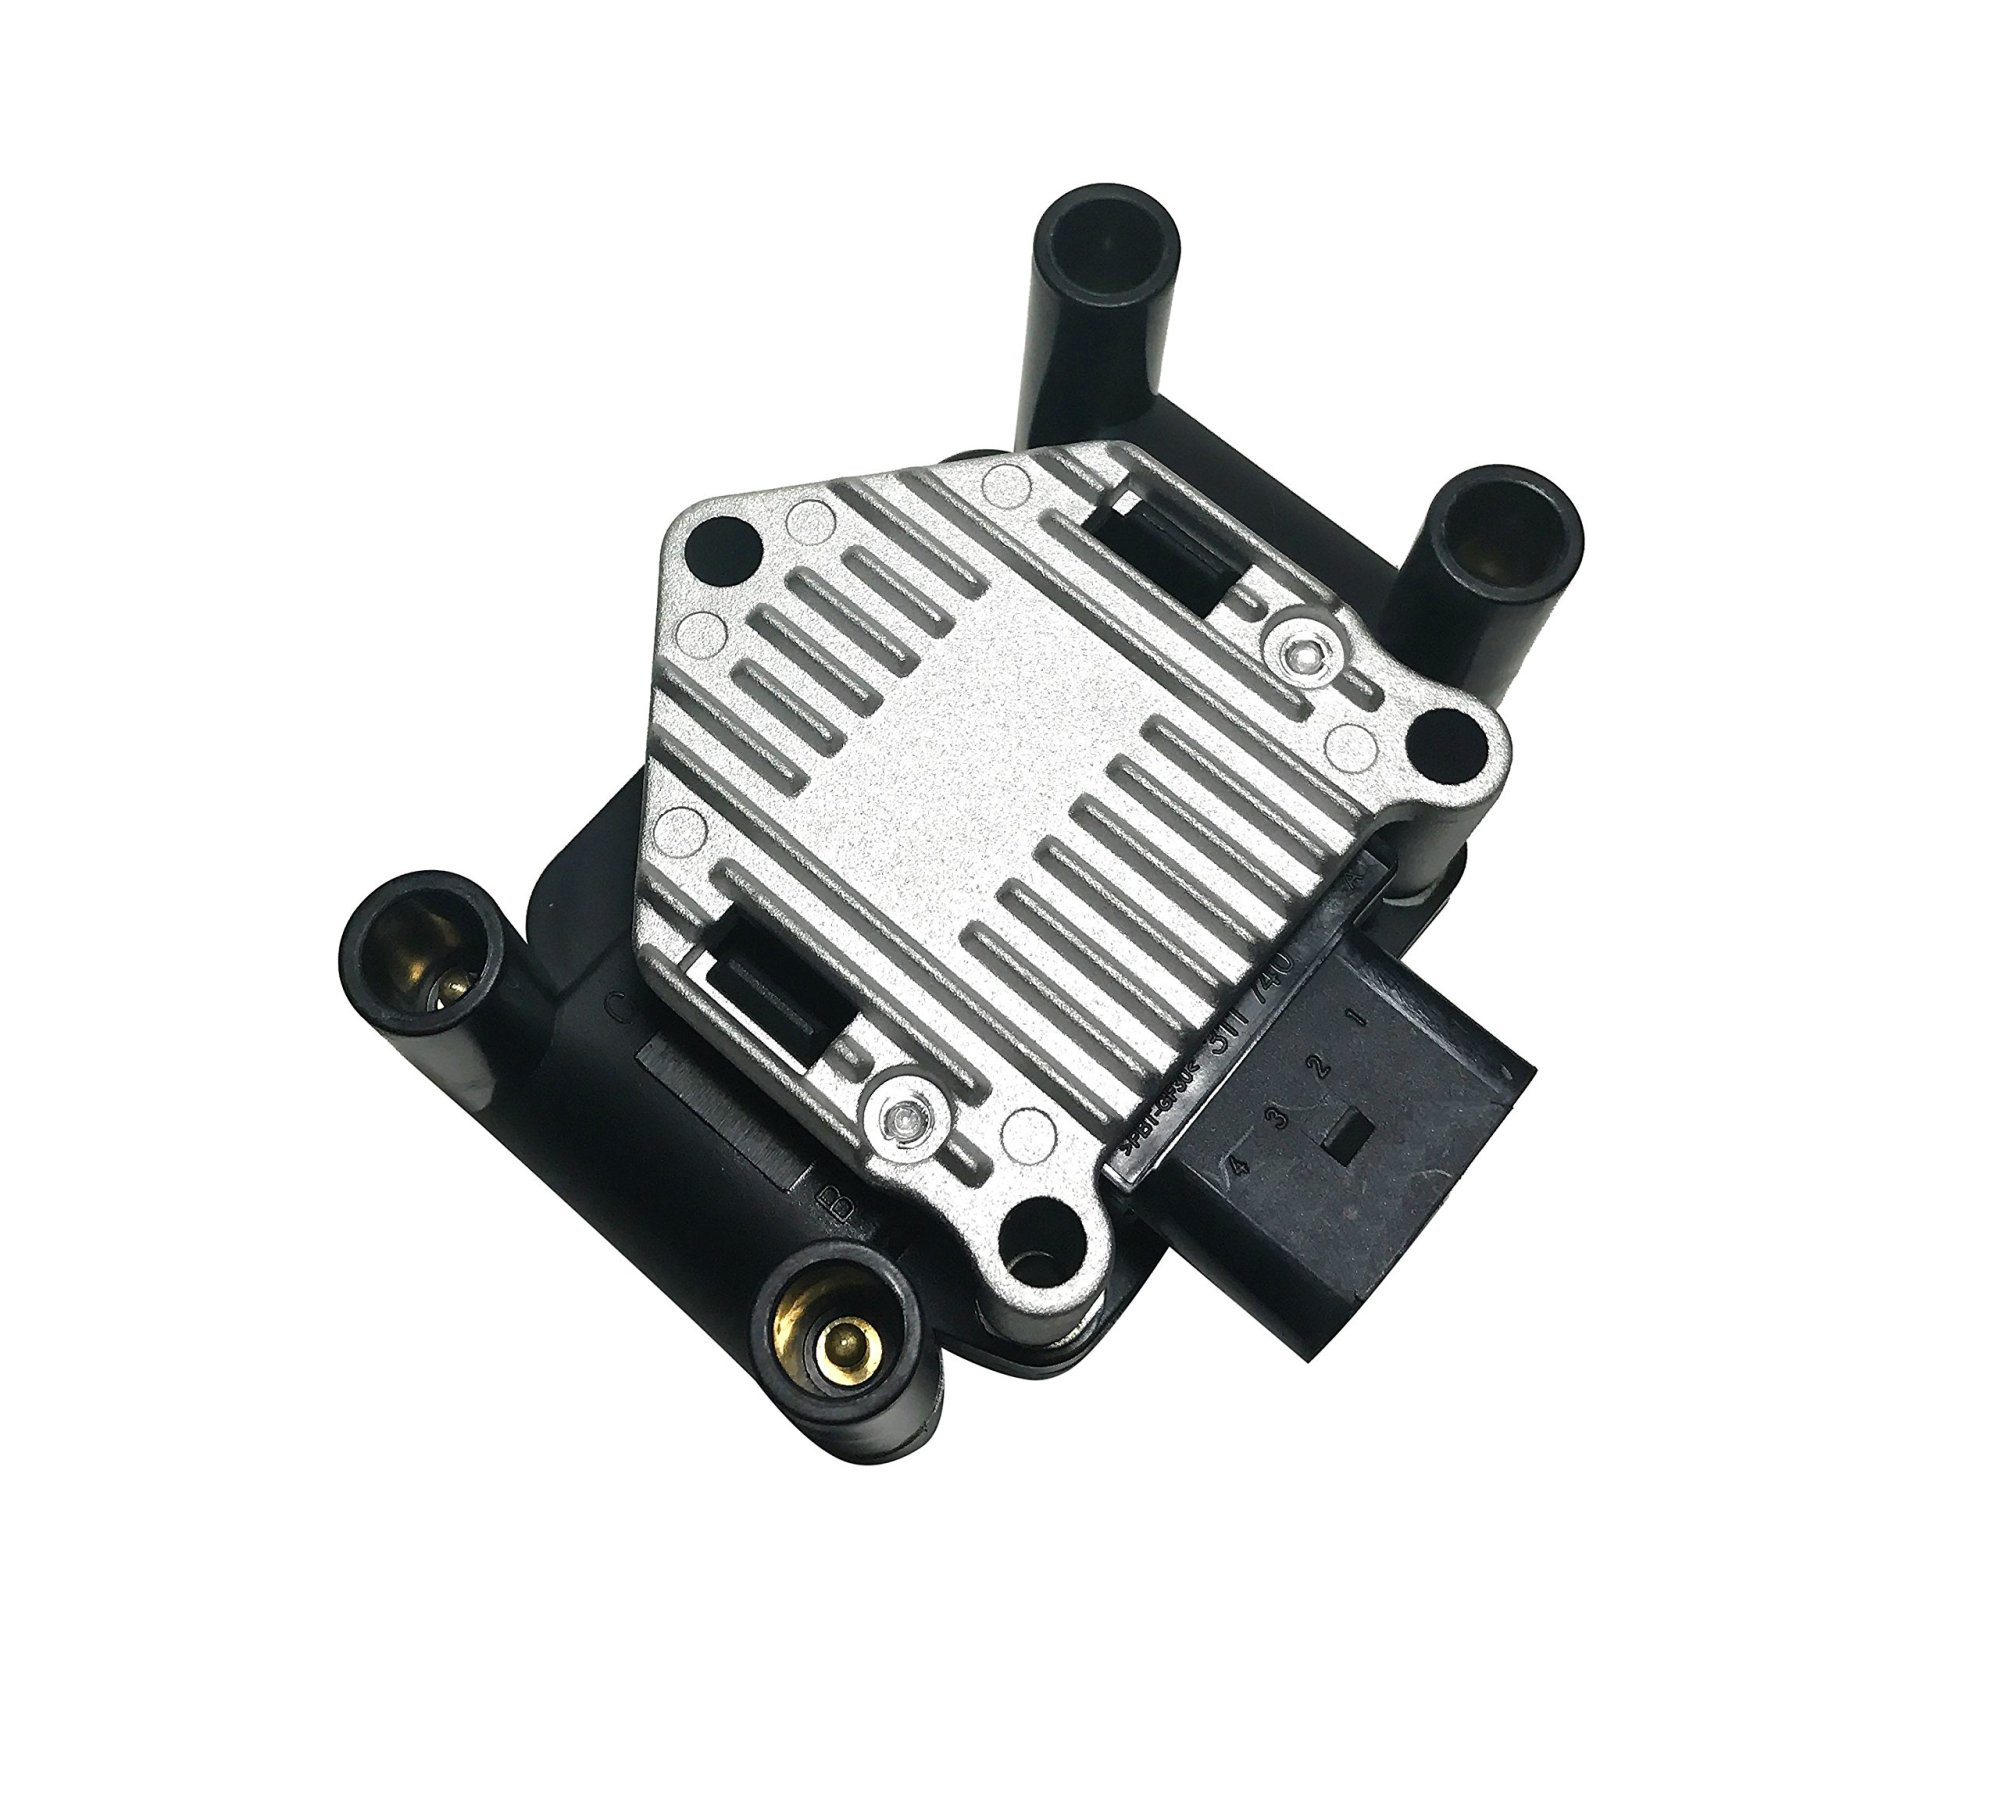 hight resolution of get quotations ignition coil pack fits 1999 2000 2001 volkswagen golf jetta beetle